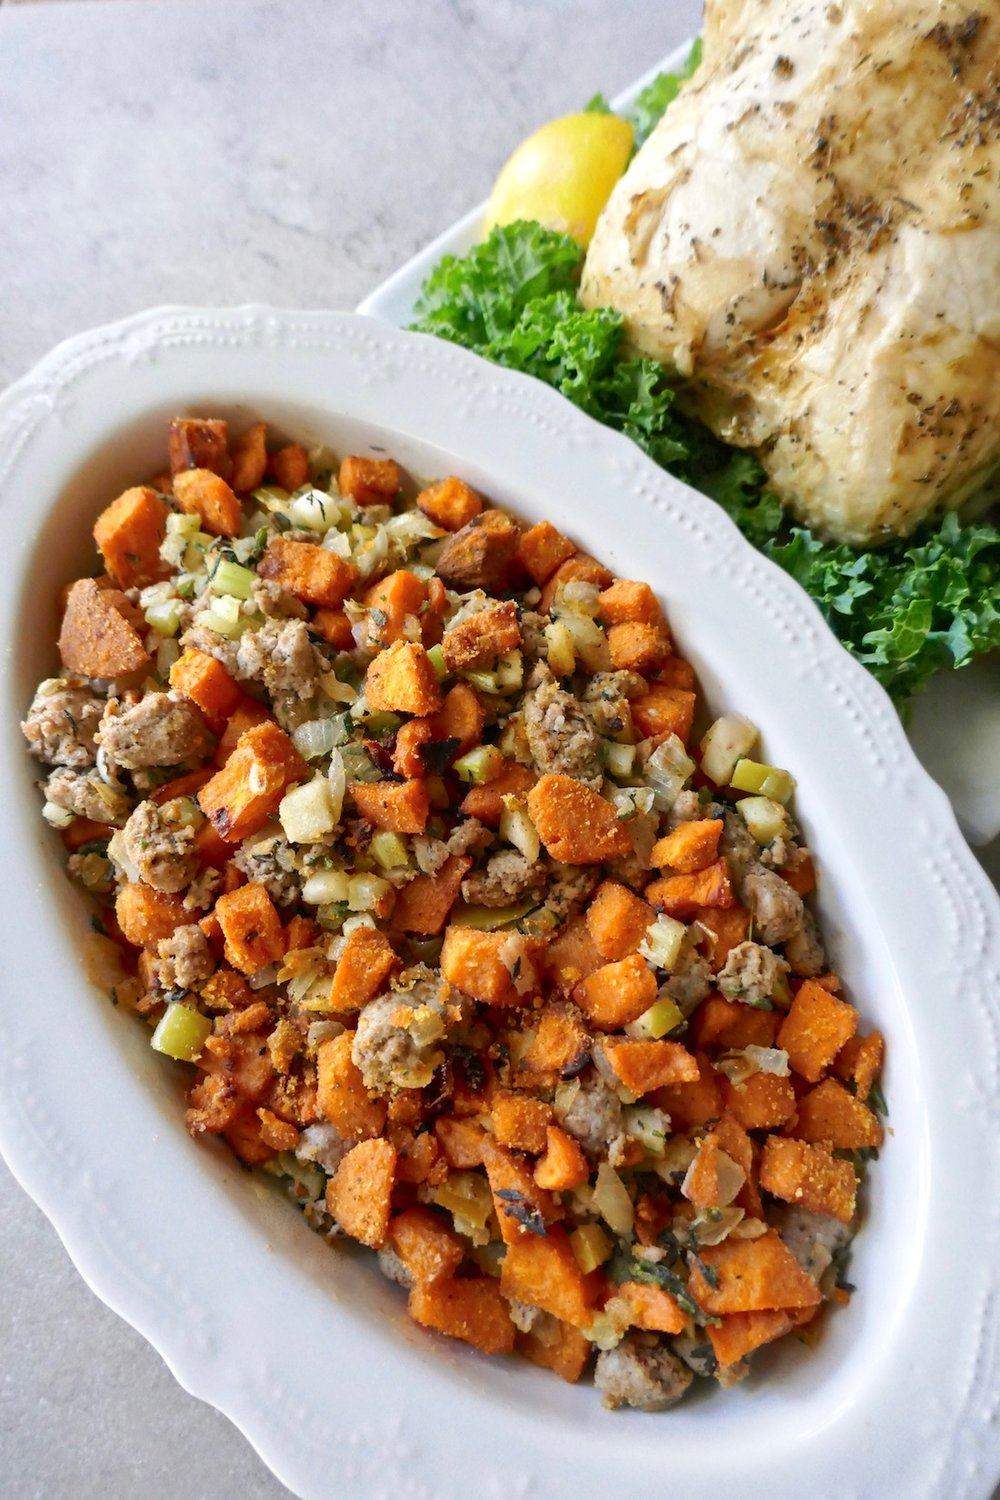 This healthy Paleo sweet potato sausage stuffing makes for a great Thanksgiving side dish or accompaniment to any night's dinner. The stuffing is grain free, gluten free, dairy free, and sugar free | TastingPage.com #stuffing #thanksgiving #thanksgivingrecipe #thanksgivingstuffing #grainfreestuffing #glutenfreestuffing #sausagestuffing #sweetpotatoes